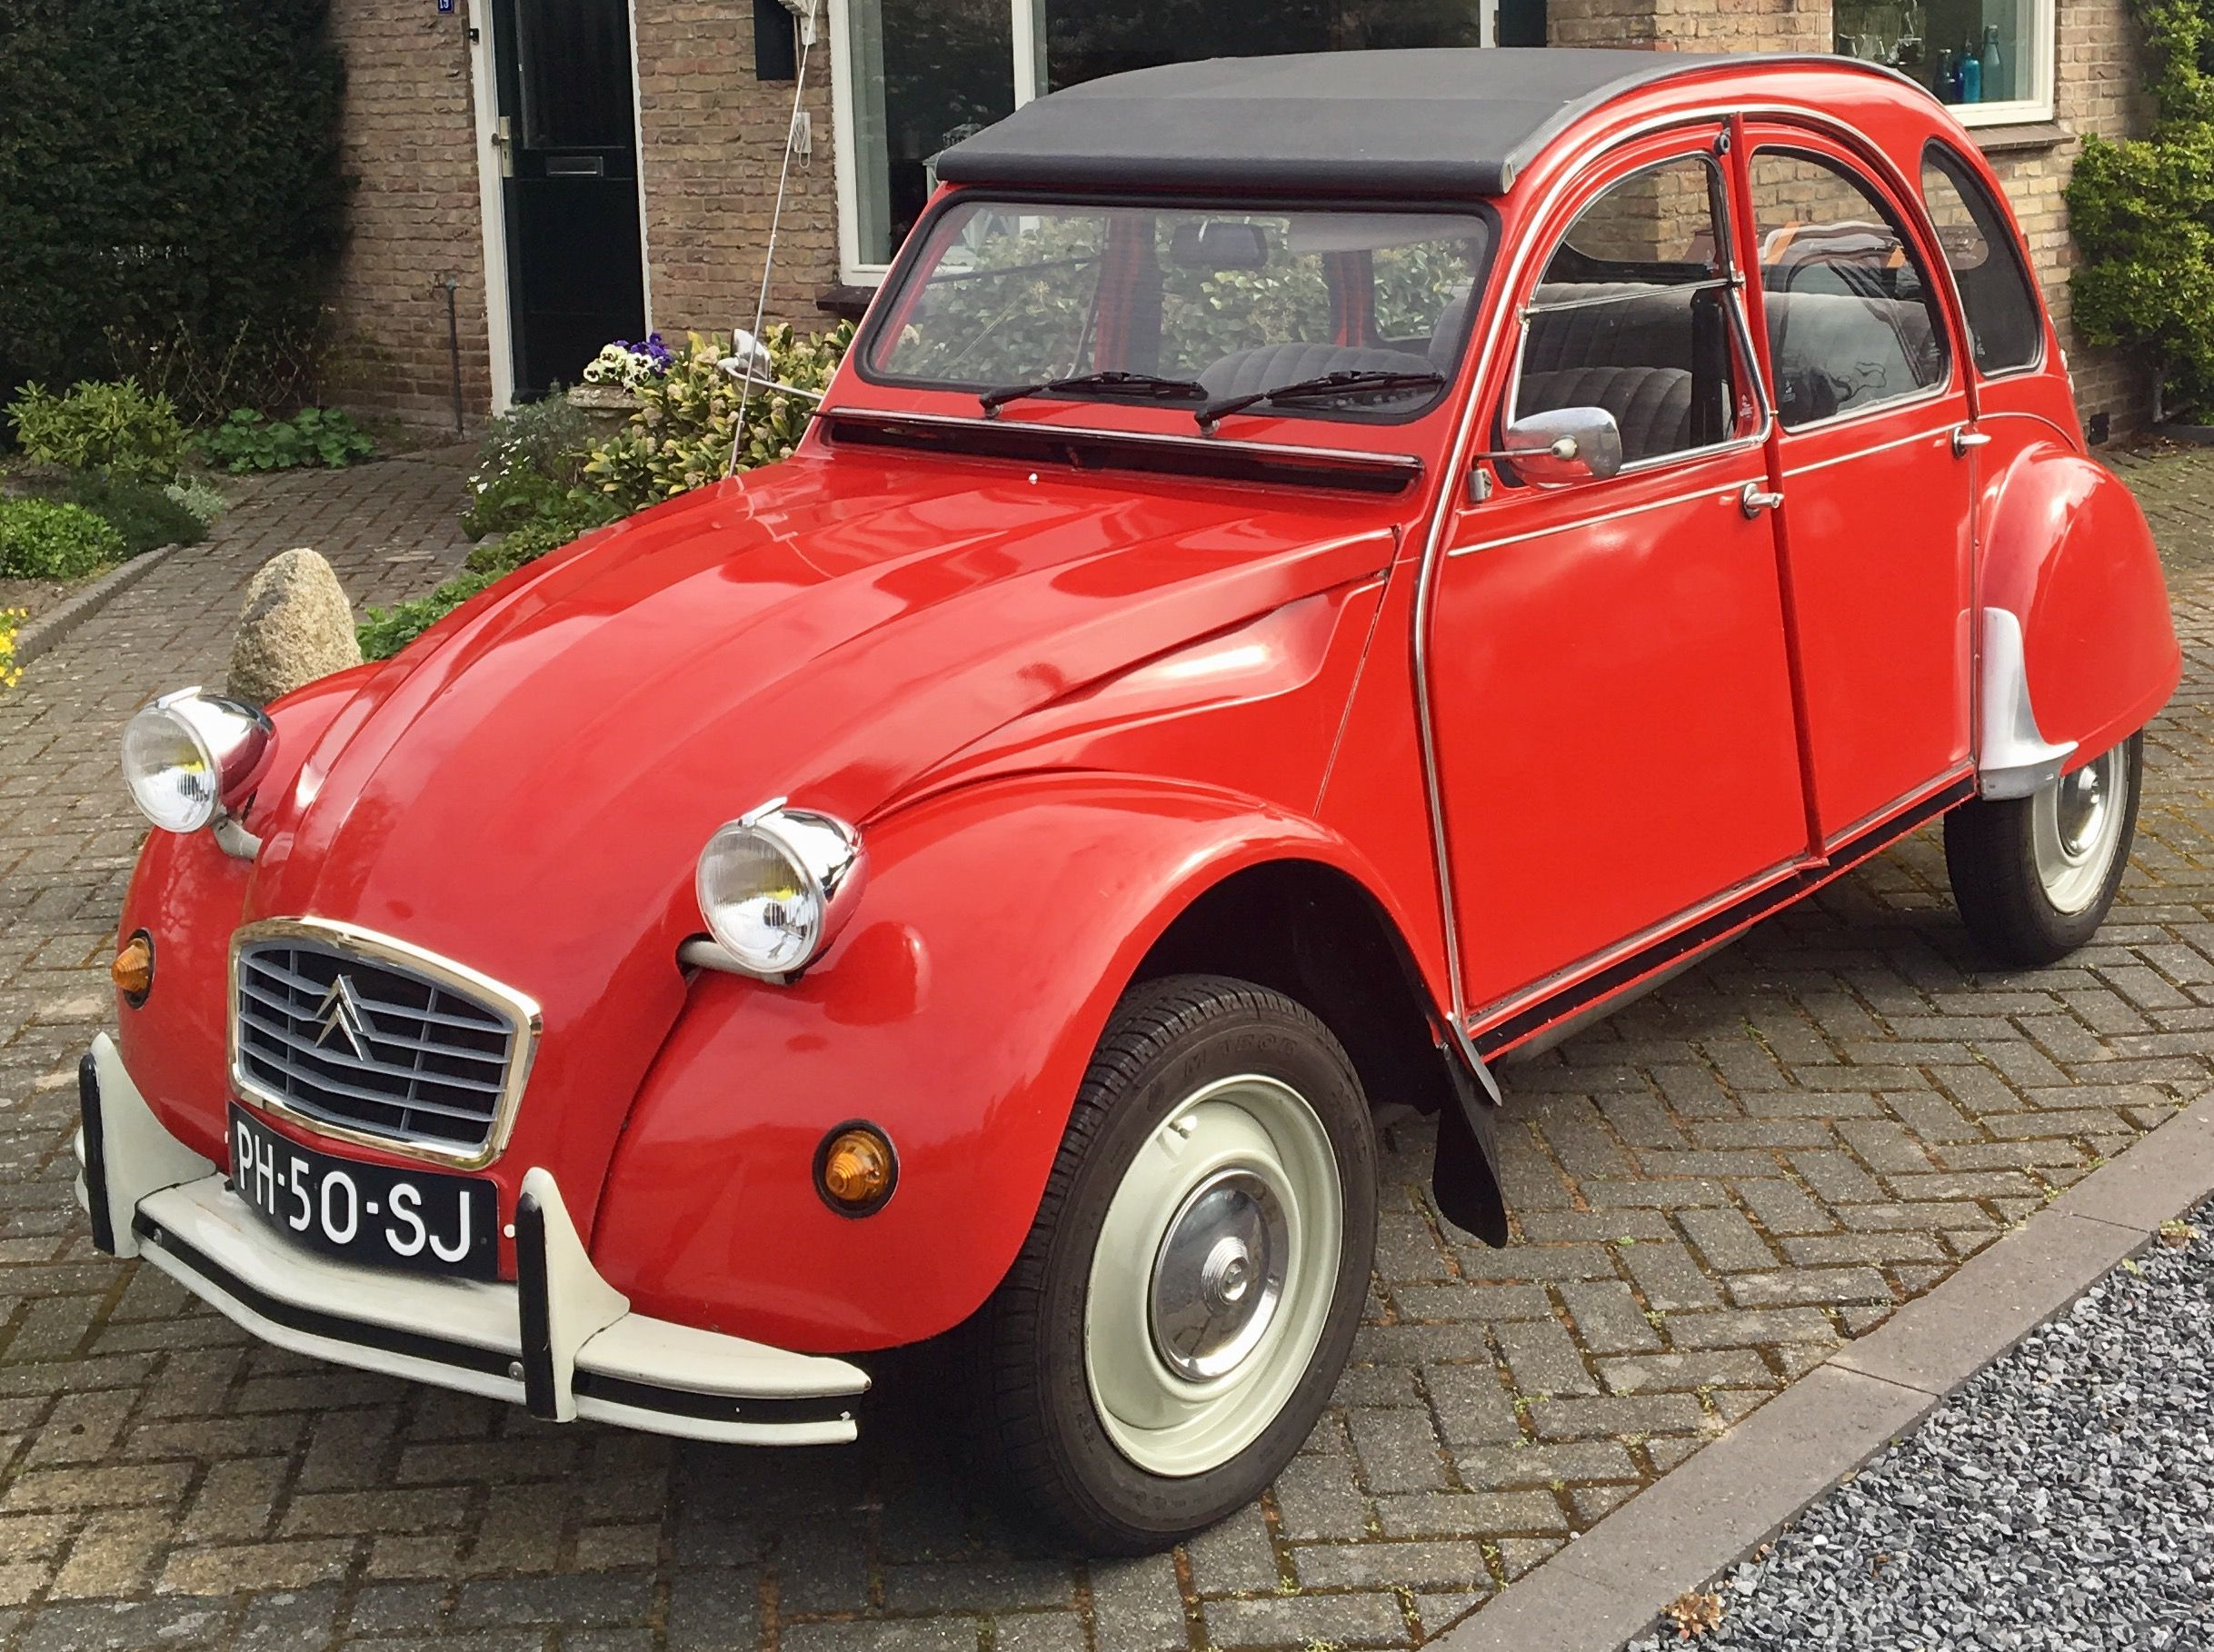 Pin By Phil Harrison On Citroen 2cv Red Car Vehicles Classic Cars